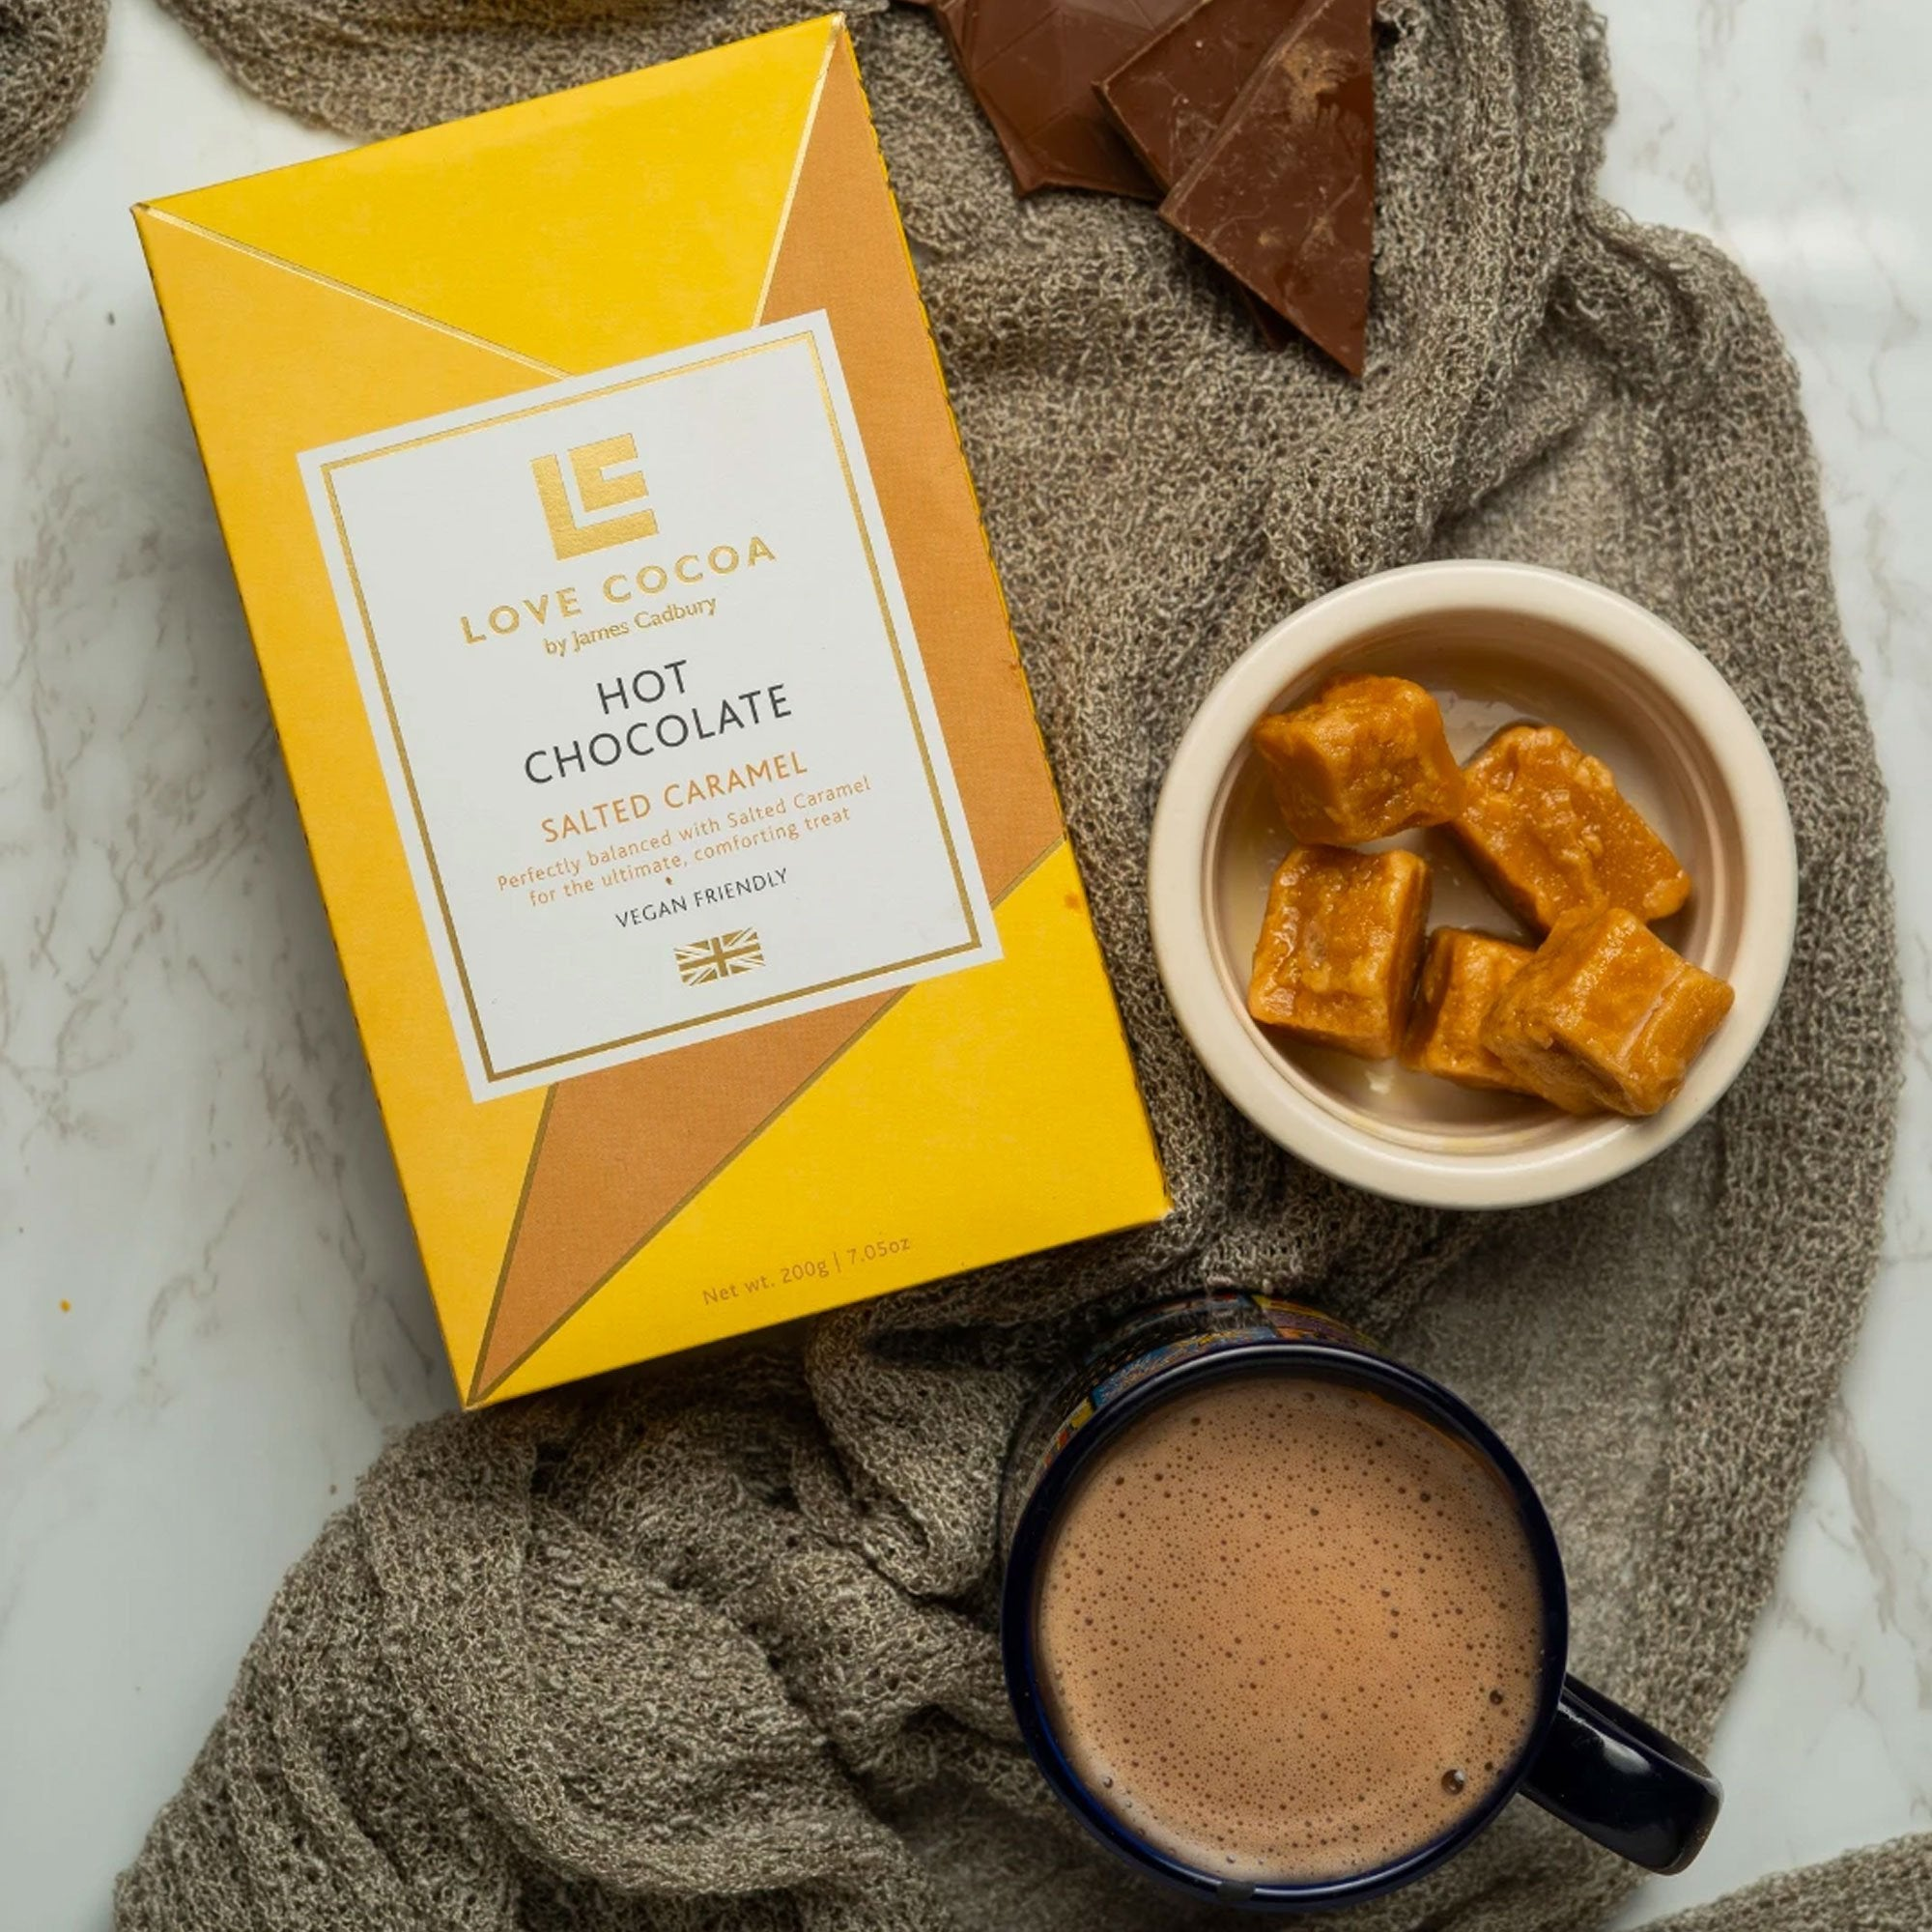 Love Cocoa | Salted Caramel Hot Chocolate | BoxTree | Send a Gift